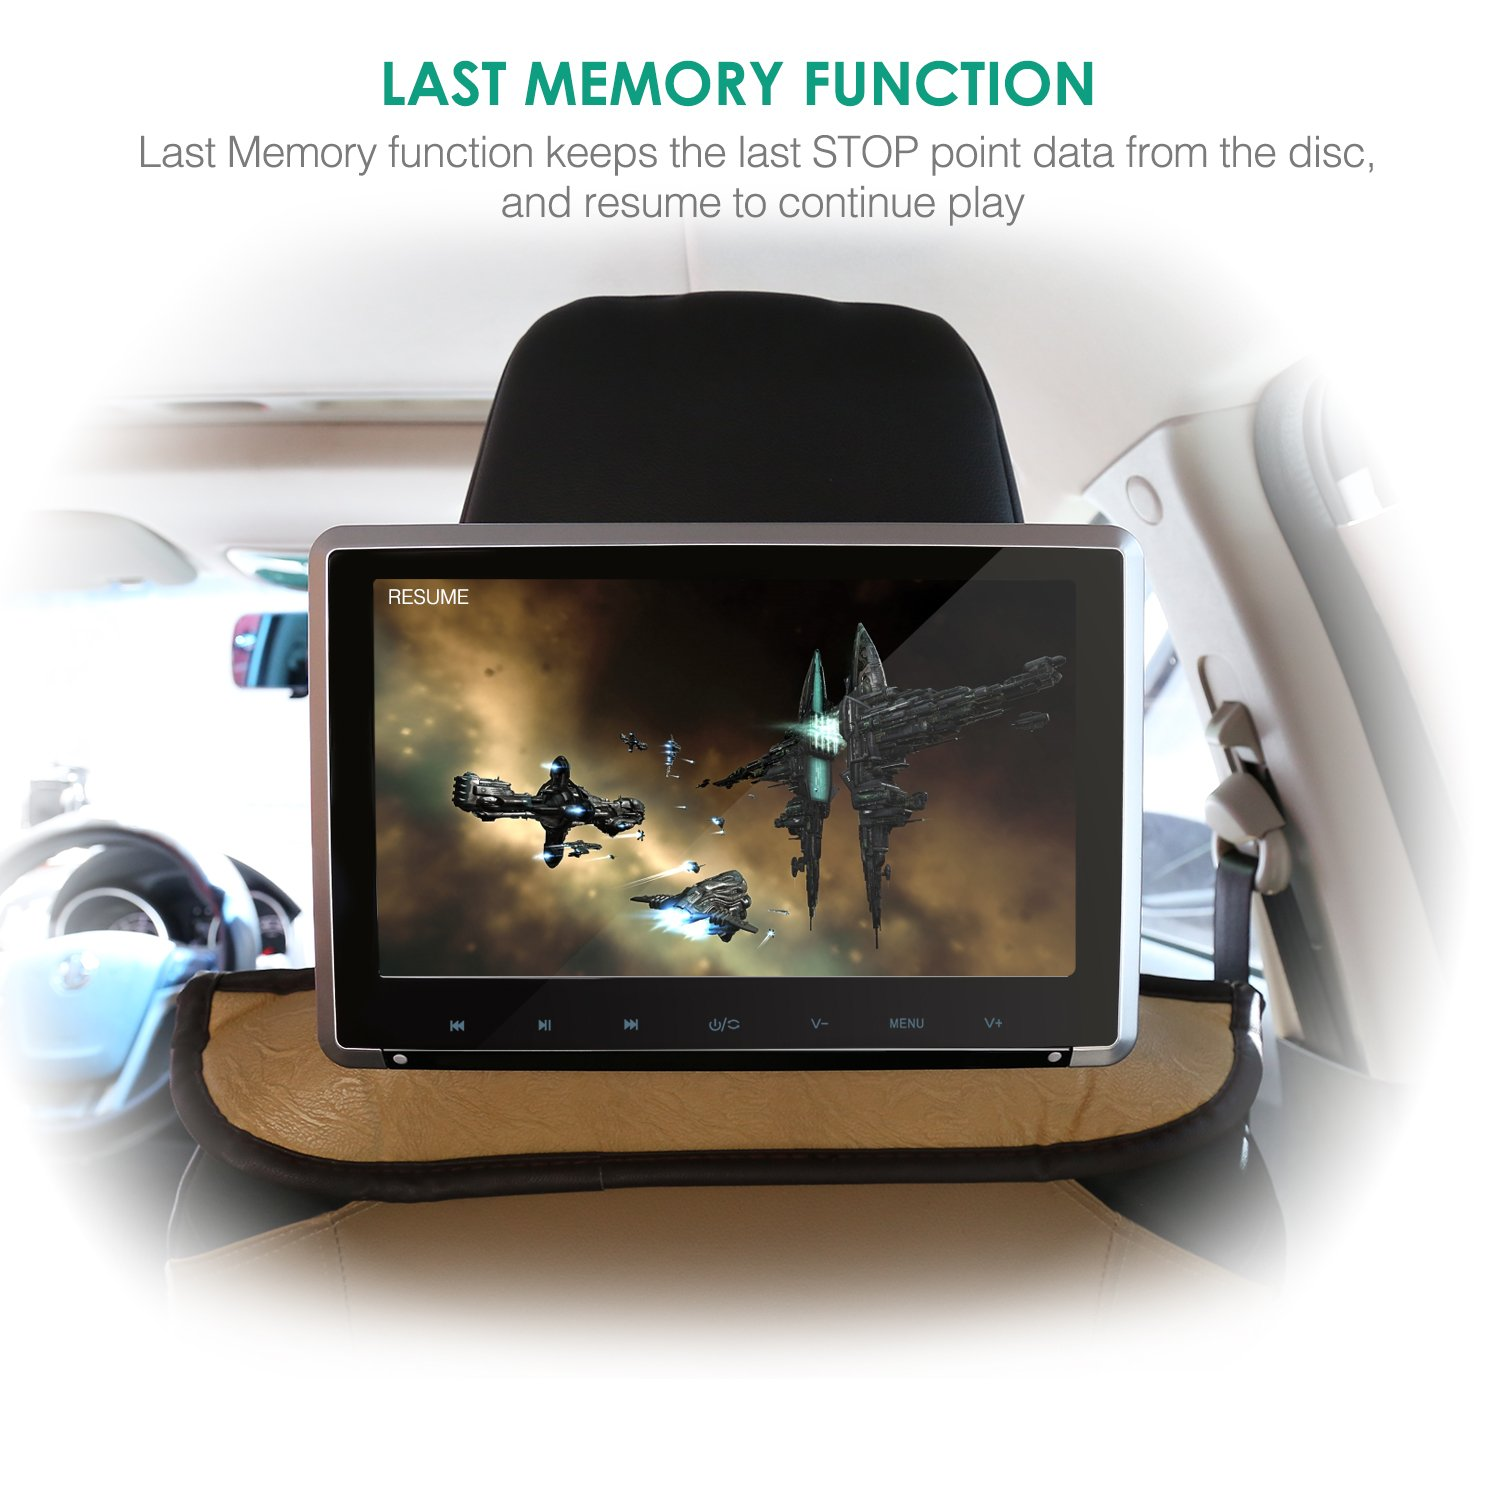 Want To Install Screens For Kids Behind Headrests Jeep Wrangler Forum Remote Start Wiring Saturnfanscom Forums This Also Has A Dvd Player And Gaming System Ill Update The Thread With How It Goes Im Wondering If Be Able Send Audio Car